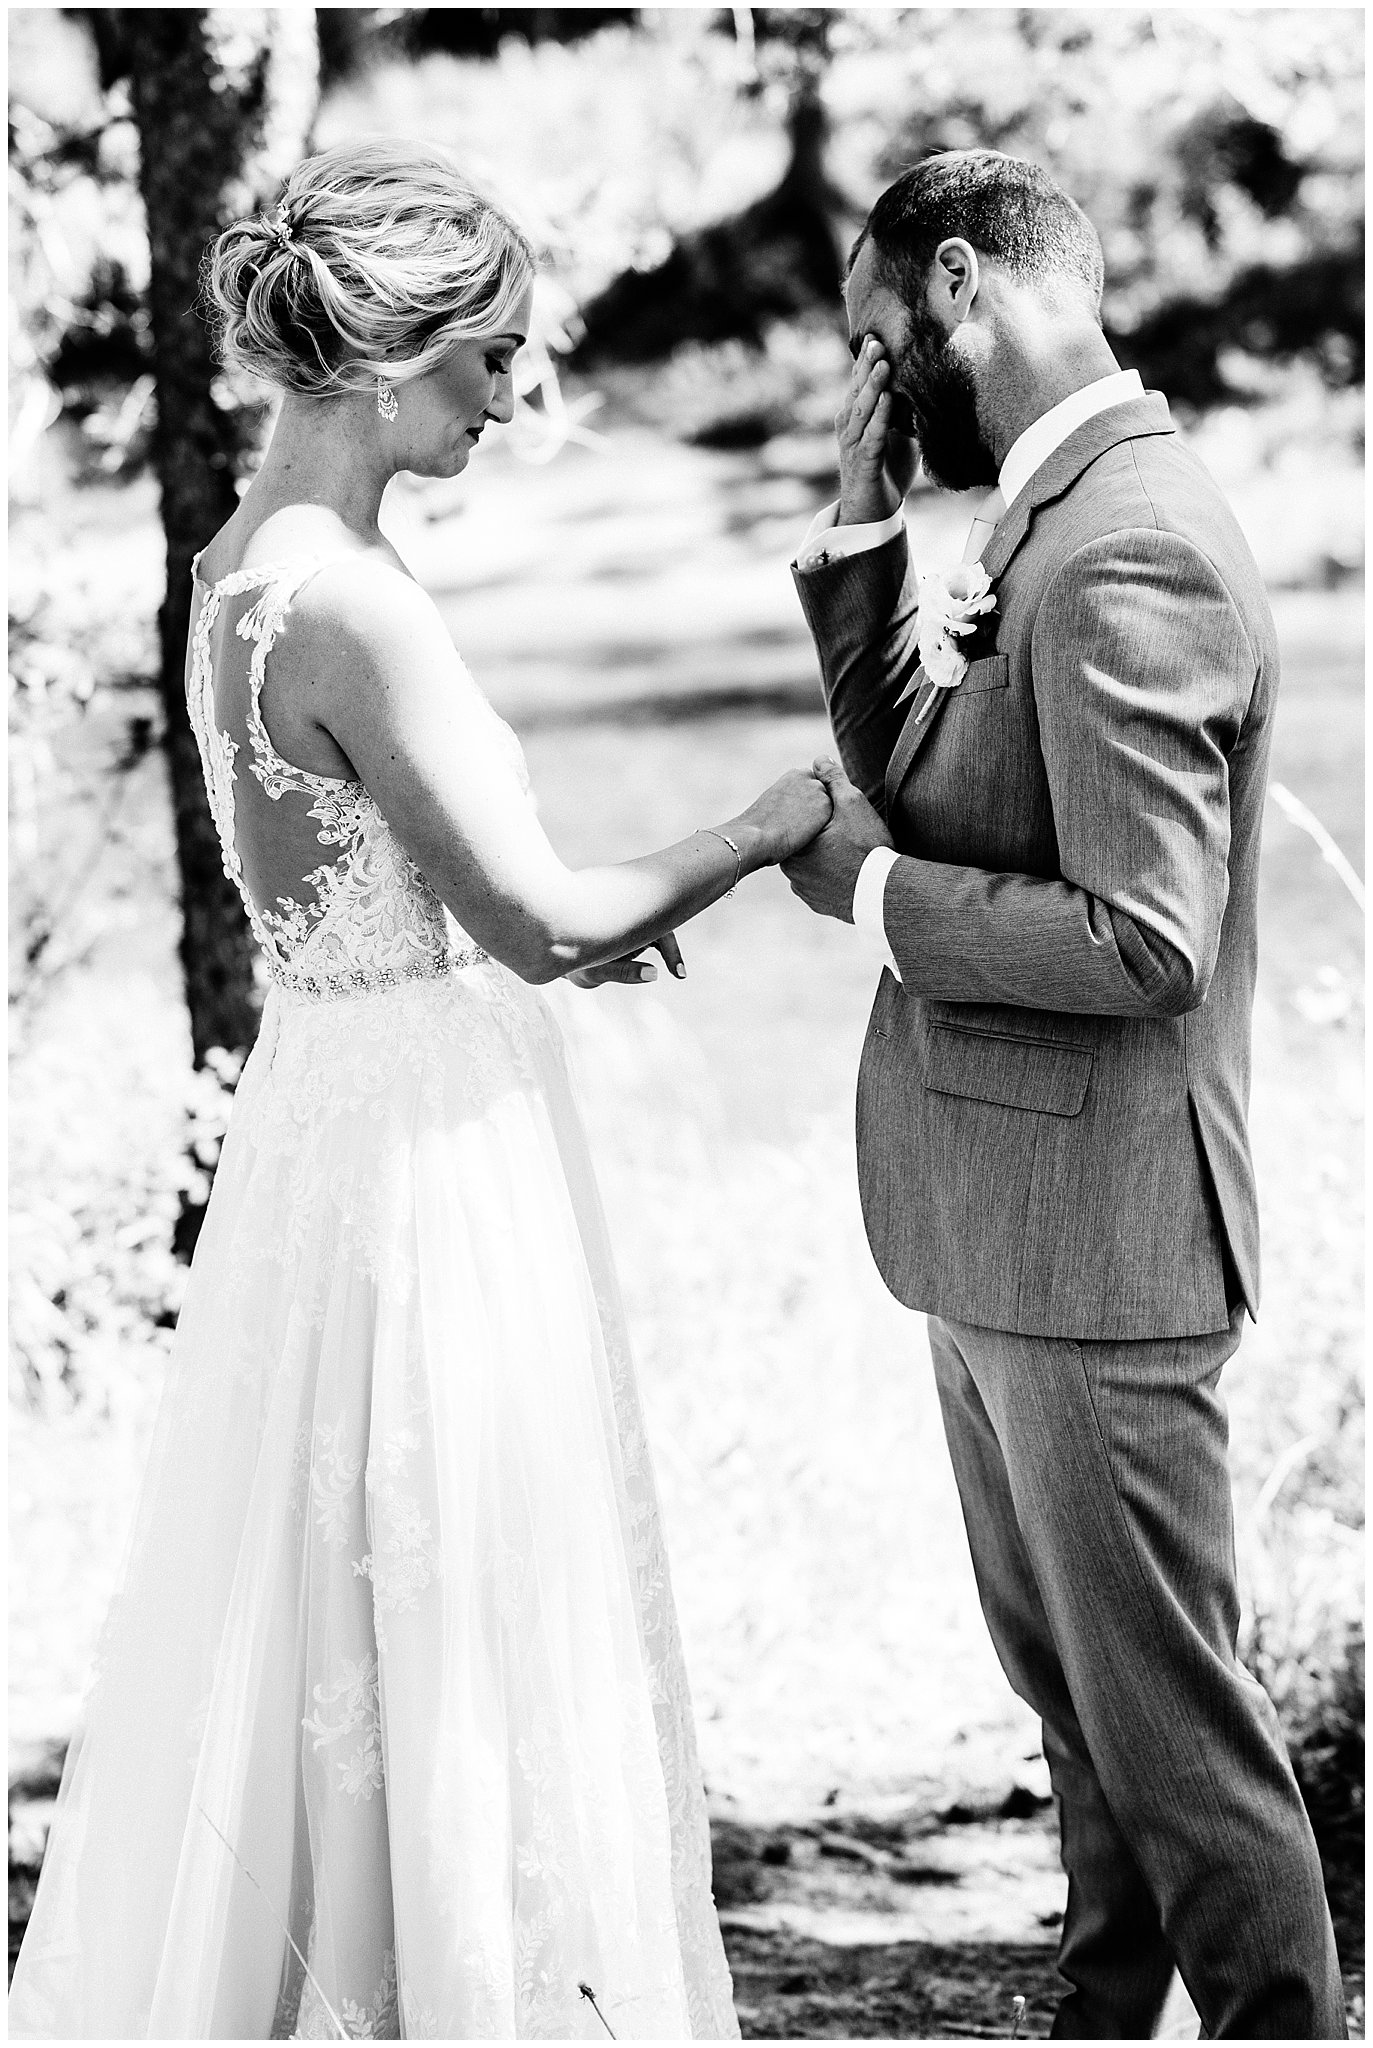 emotional first look by river at Elegant Piney River Ranch wedding by Piney River Ranch wedding photographer Jennie Crate, Photographer